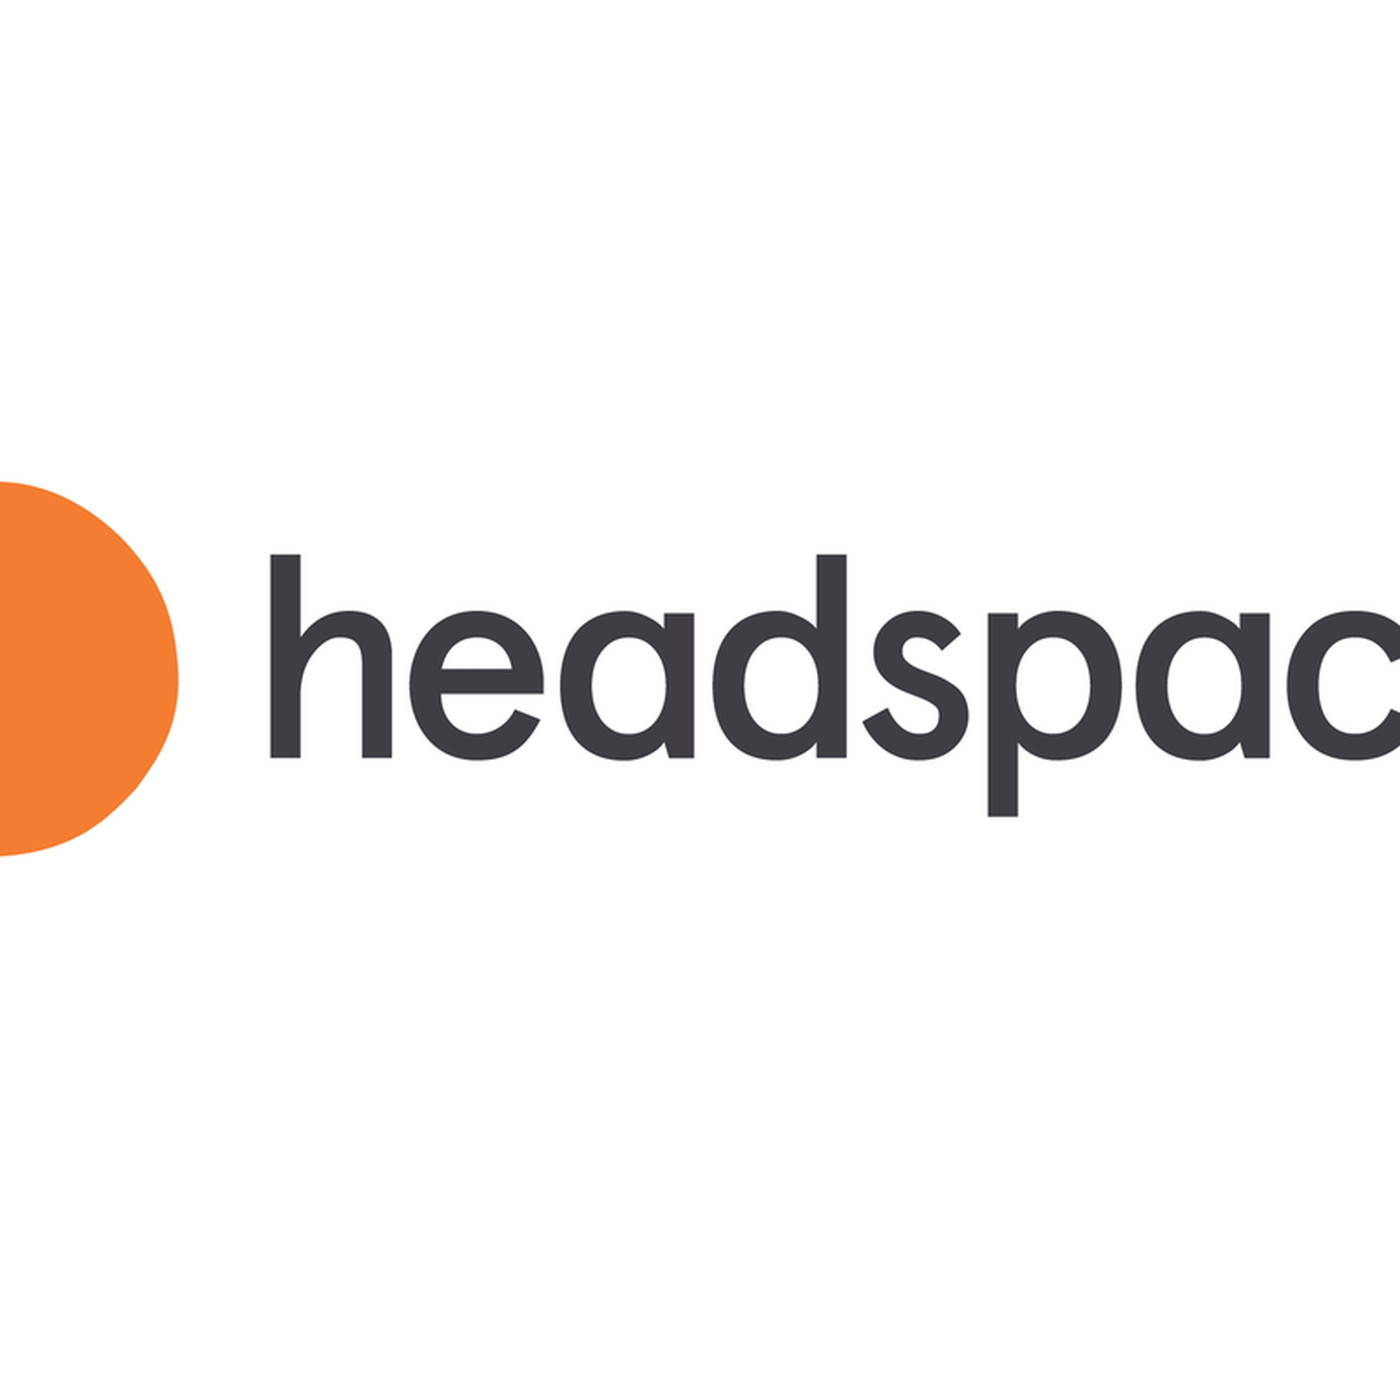 headspace is now free for health care professionals because of the pandemic the verge headspace is now free for health care